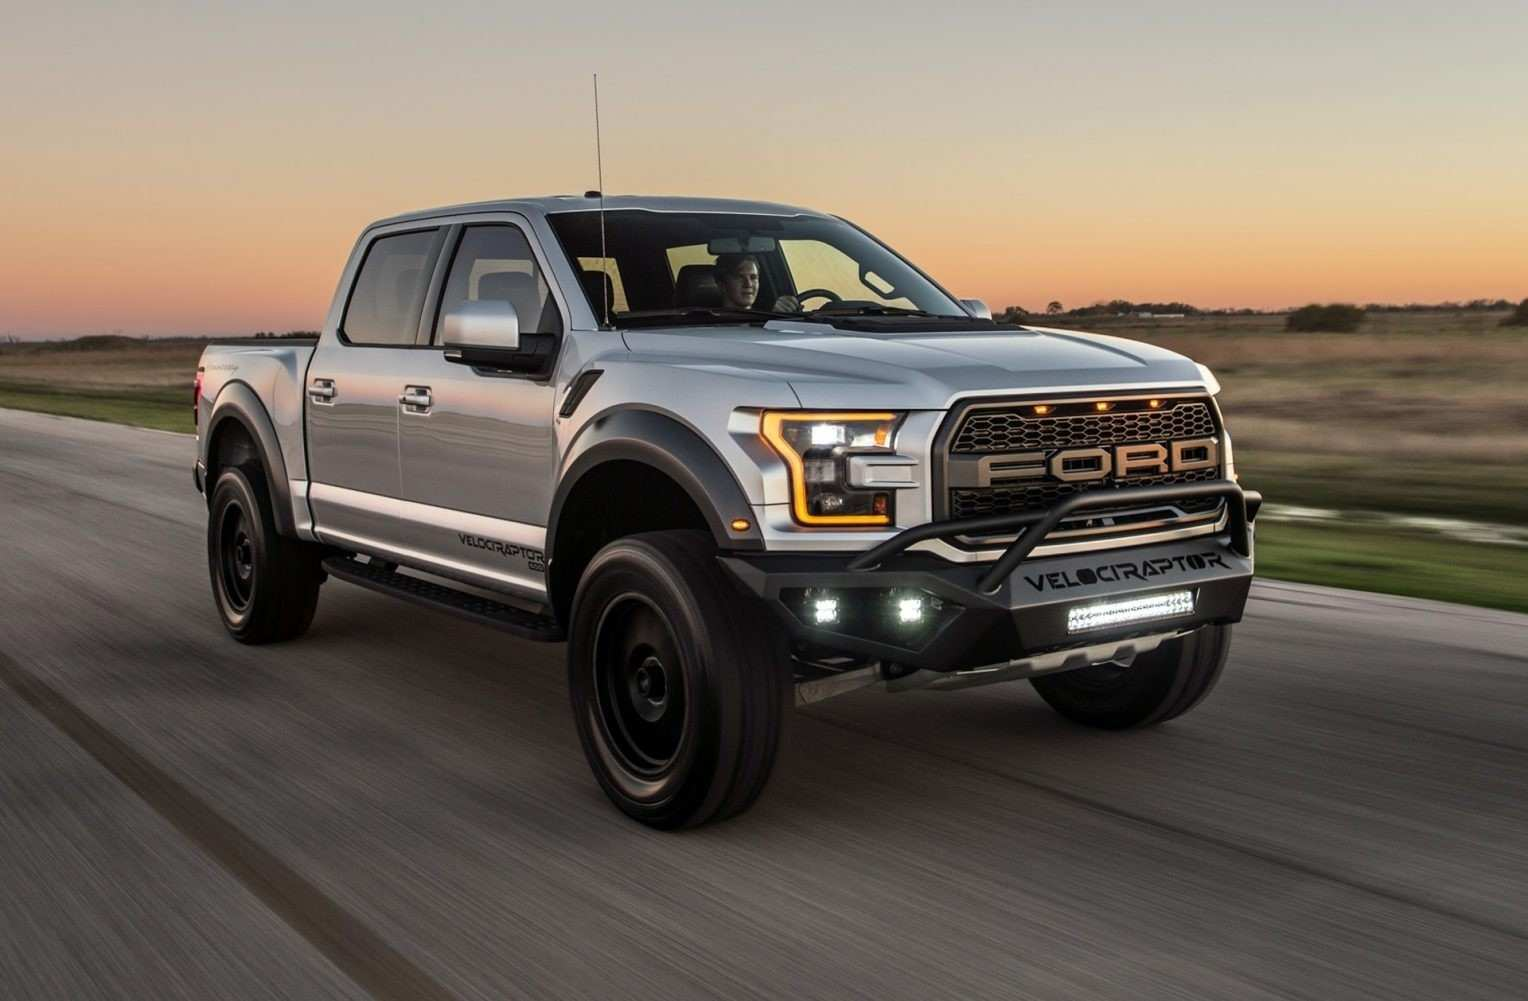 34 Gallery of Best 2019 Ford F250 Release Date Review Specs And Release Date Configurations for Best 2019 Ford F250 Release Date Review Specs And Release Date